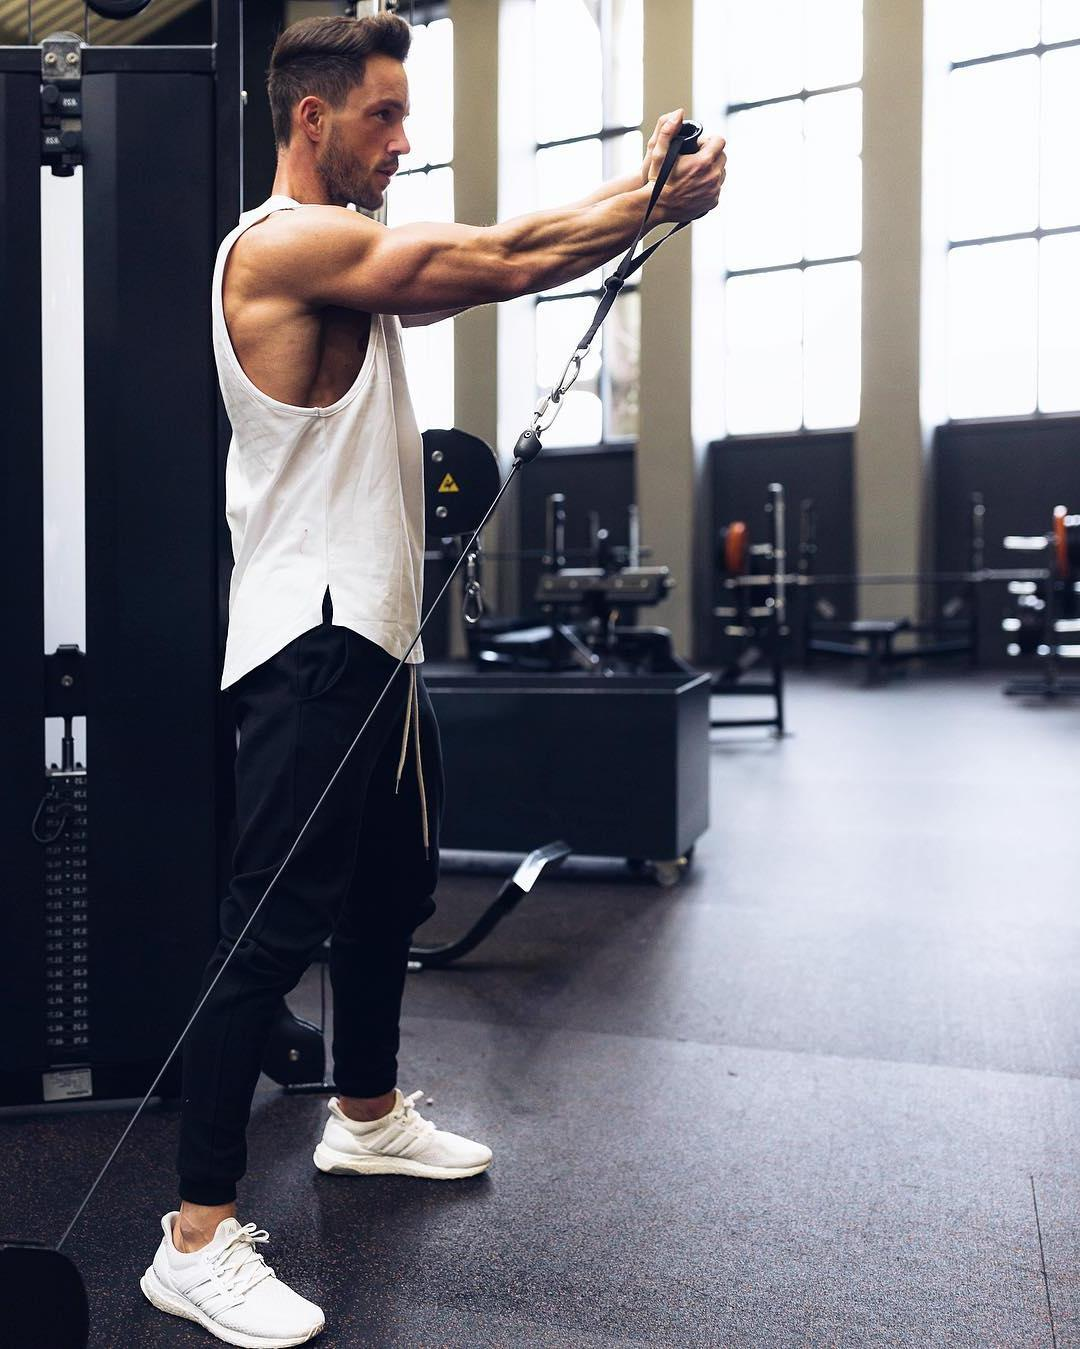 handsome-stylish-gay-dude-gym-workout